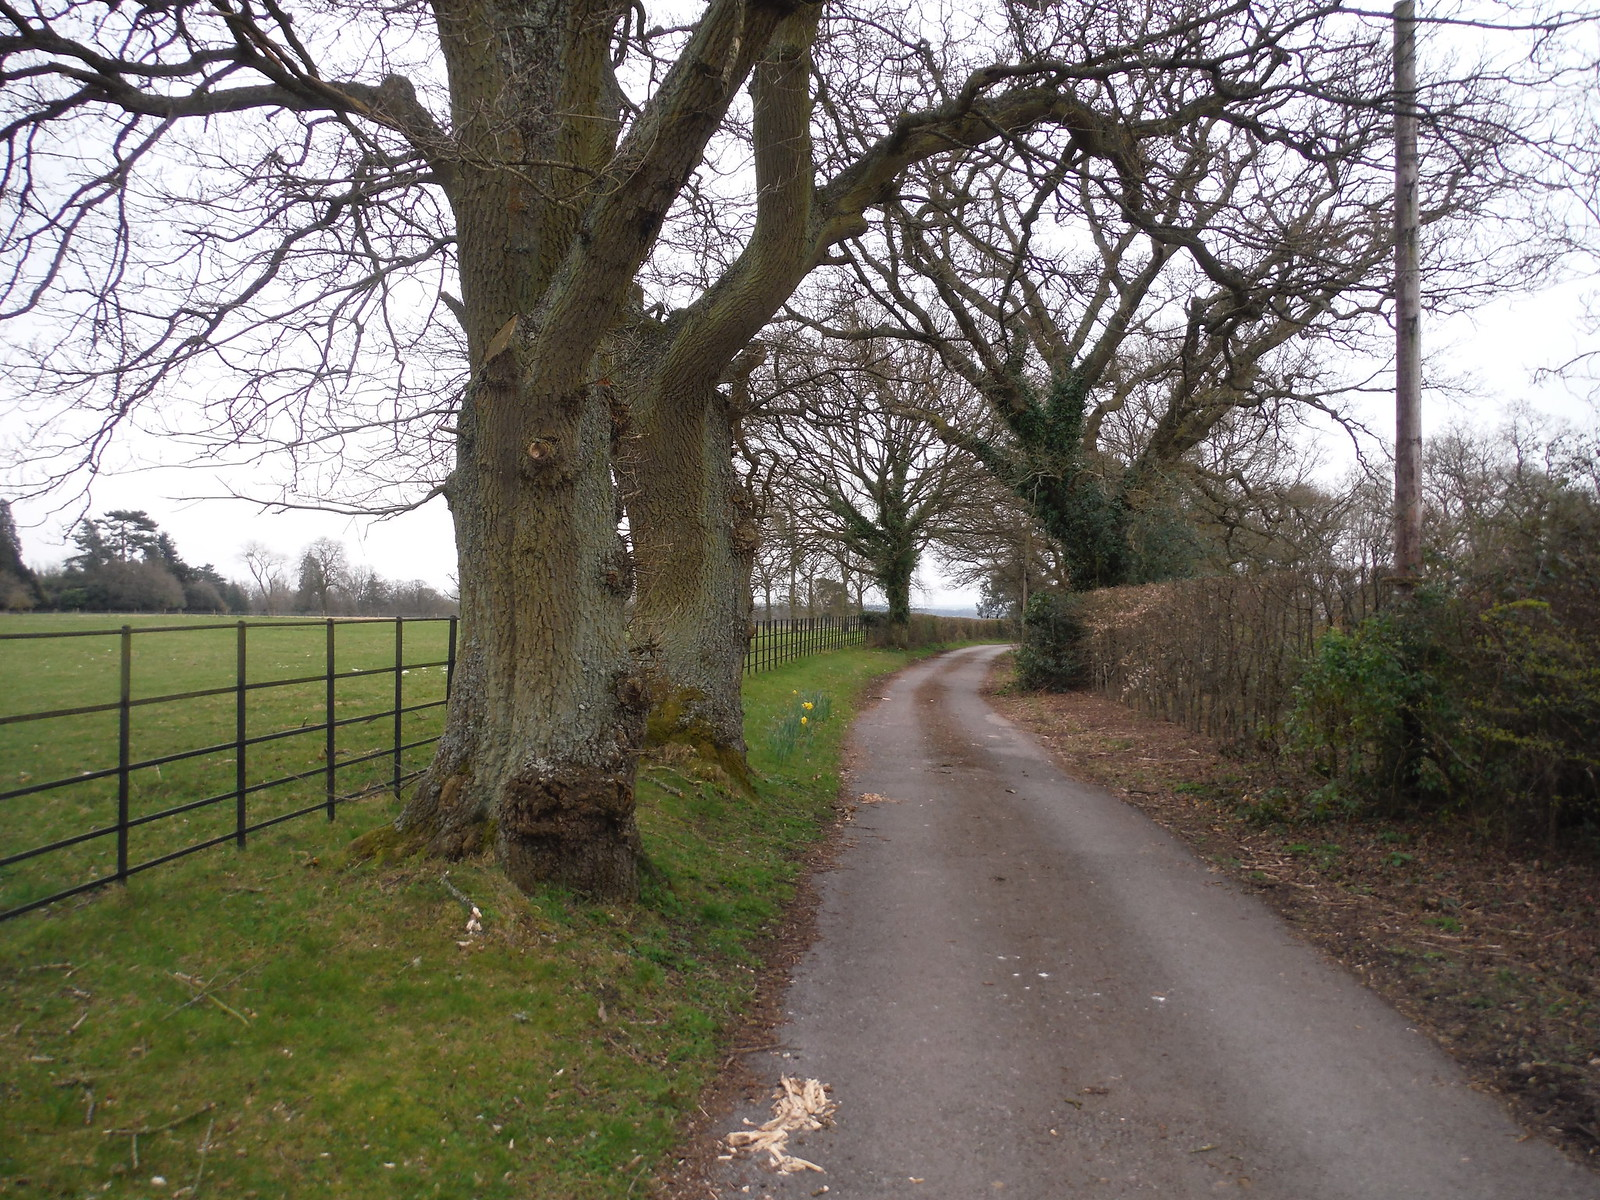 Driveway to Wooten's SWC Walk 260 Aldermaston to Woolhampton [Midgham Station] (via Frilsham)